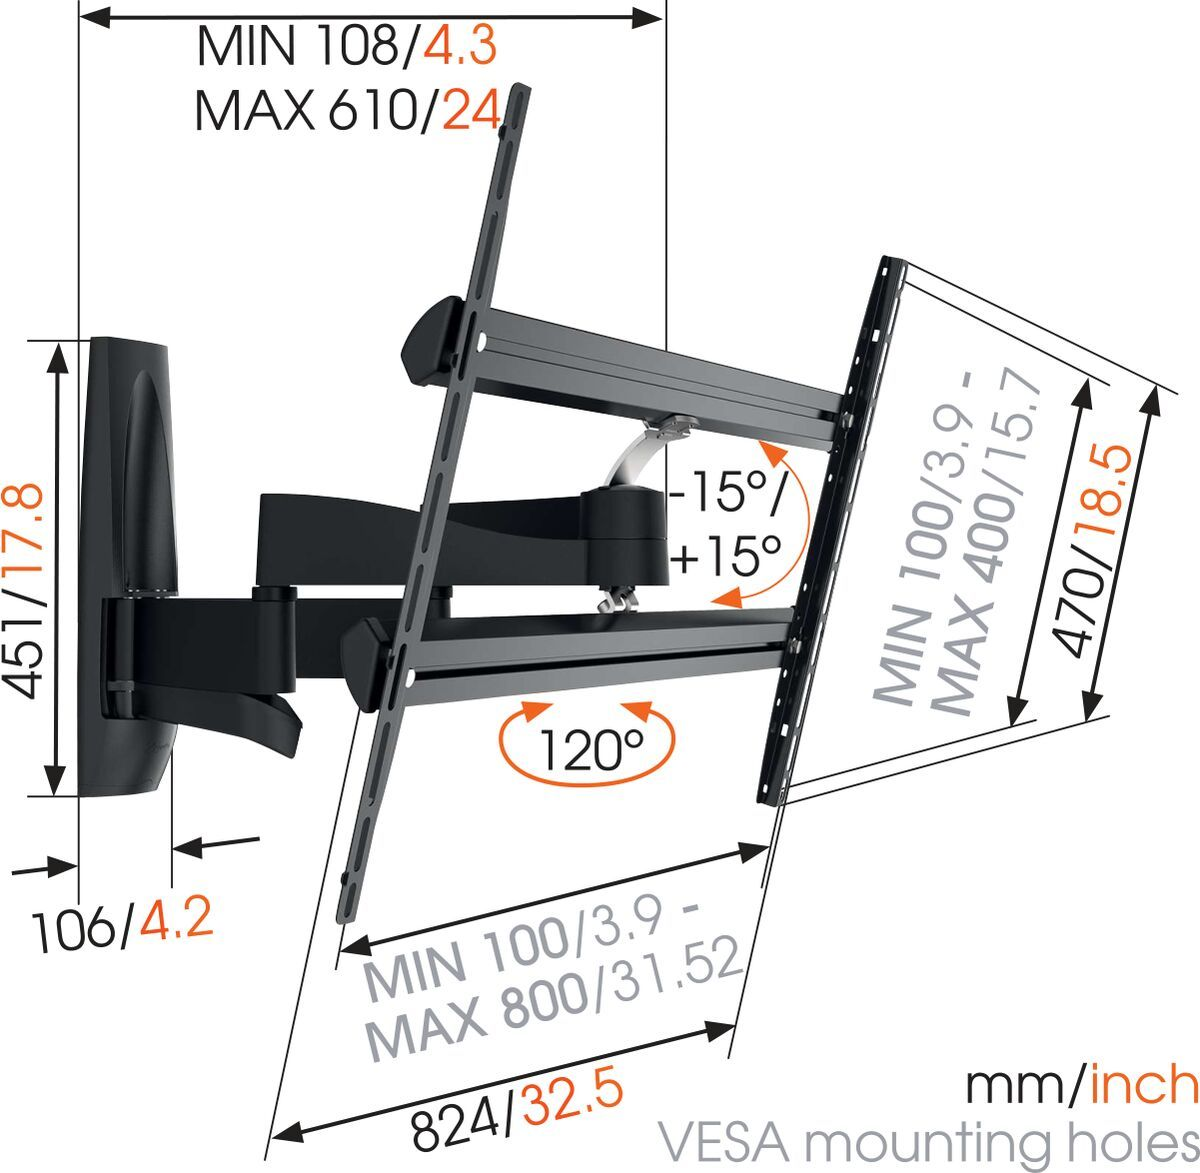 Vogel's WALL 2450 Full-Motion TV Wall Mount - Suitable for Motion (up to 120°) - Suitable for Tilt up to 15° - Suitable for Dimensions